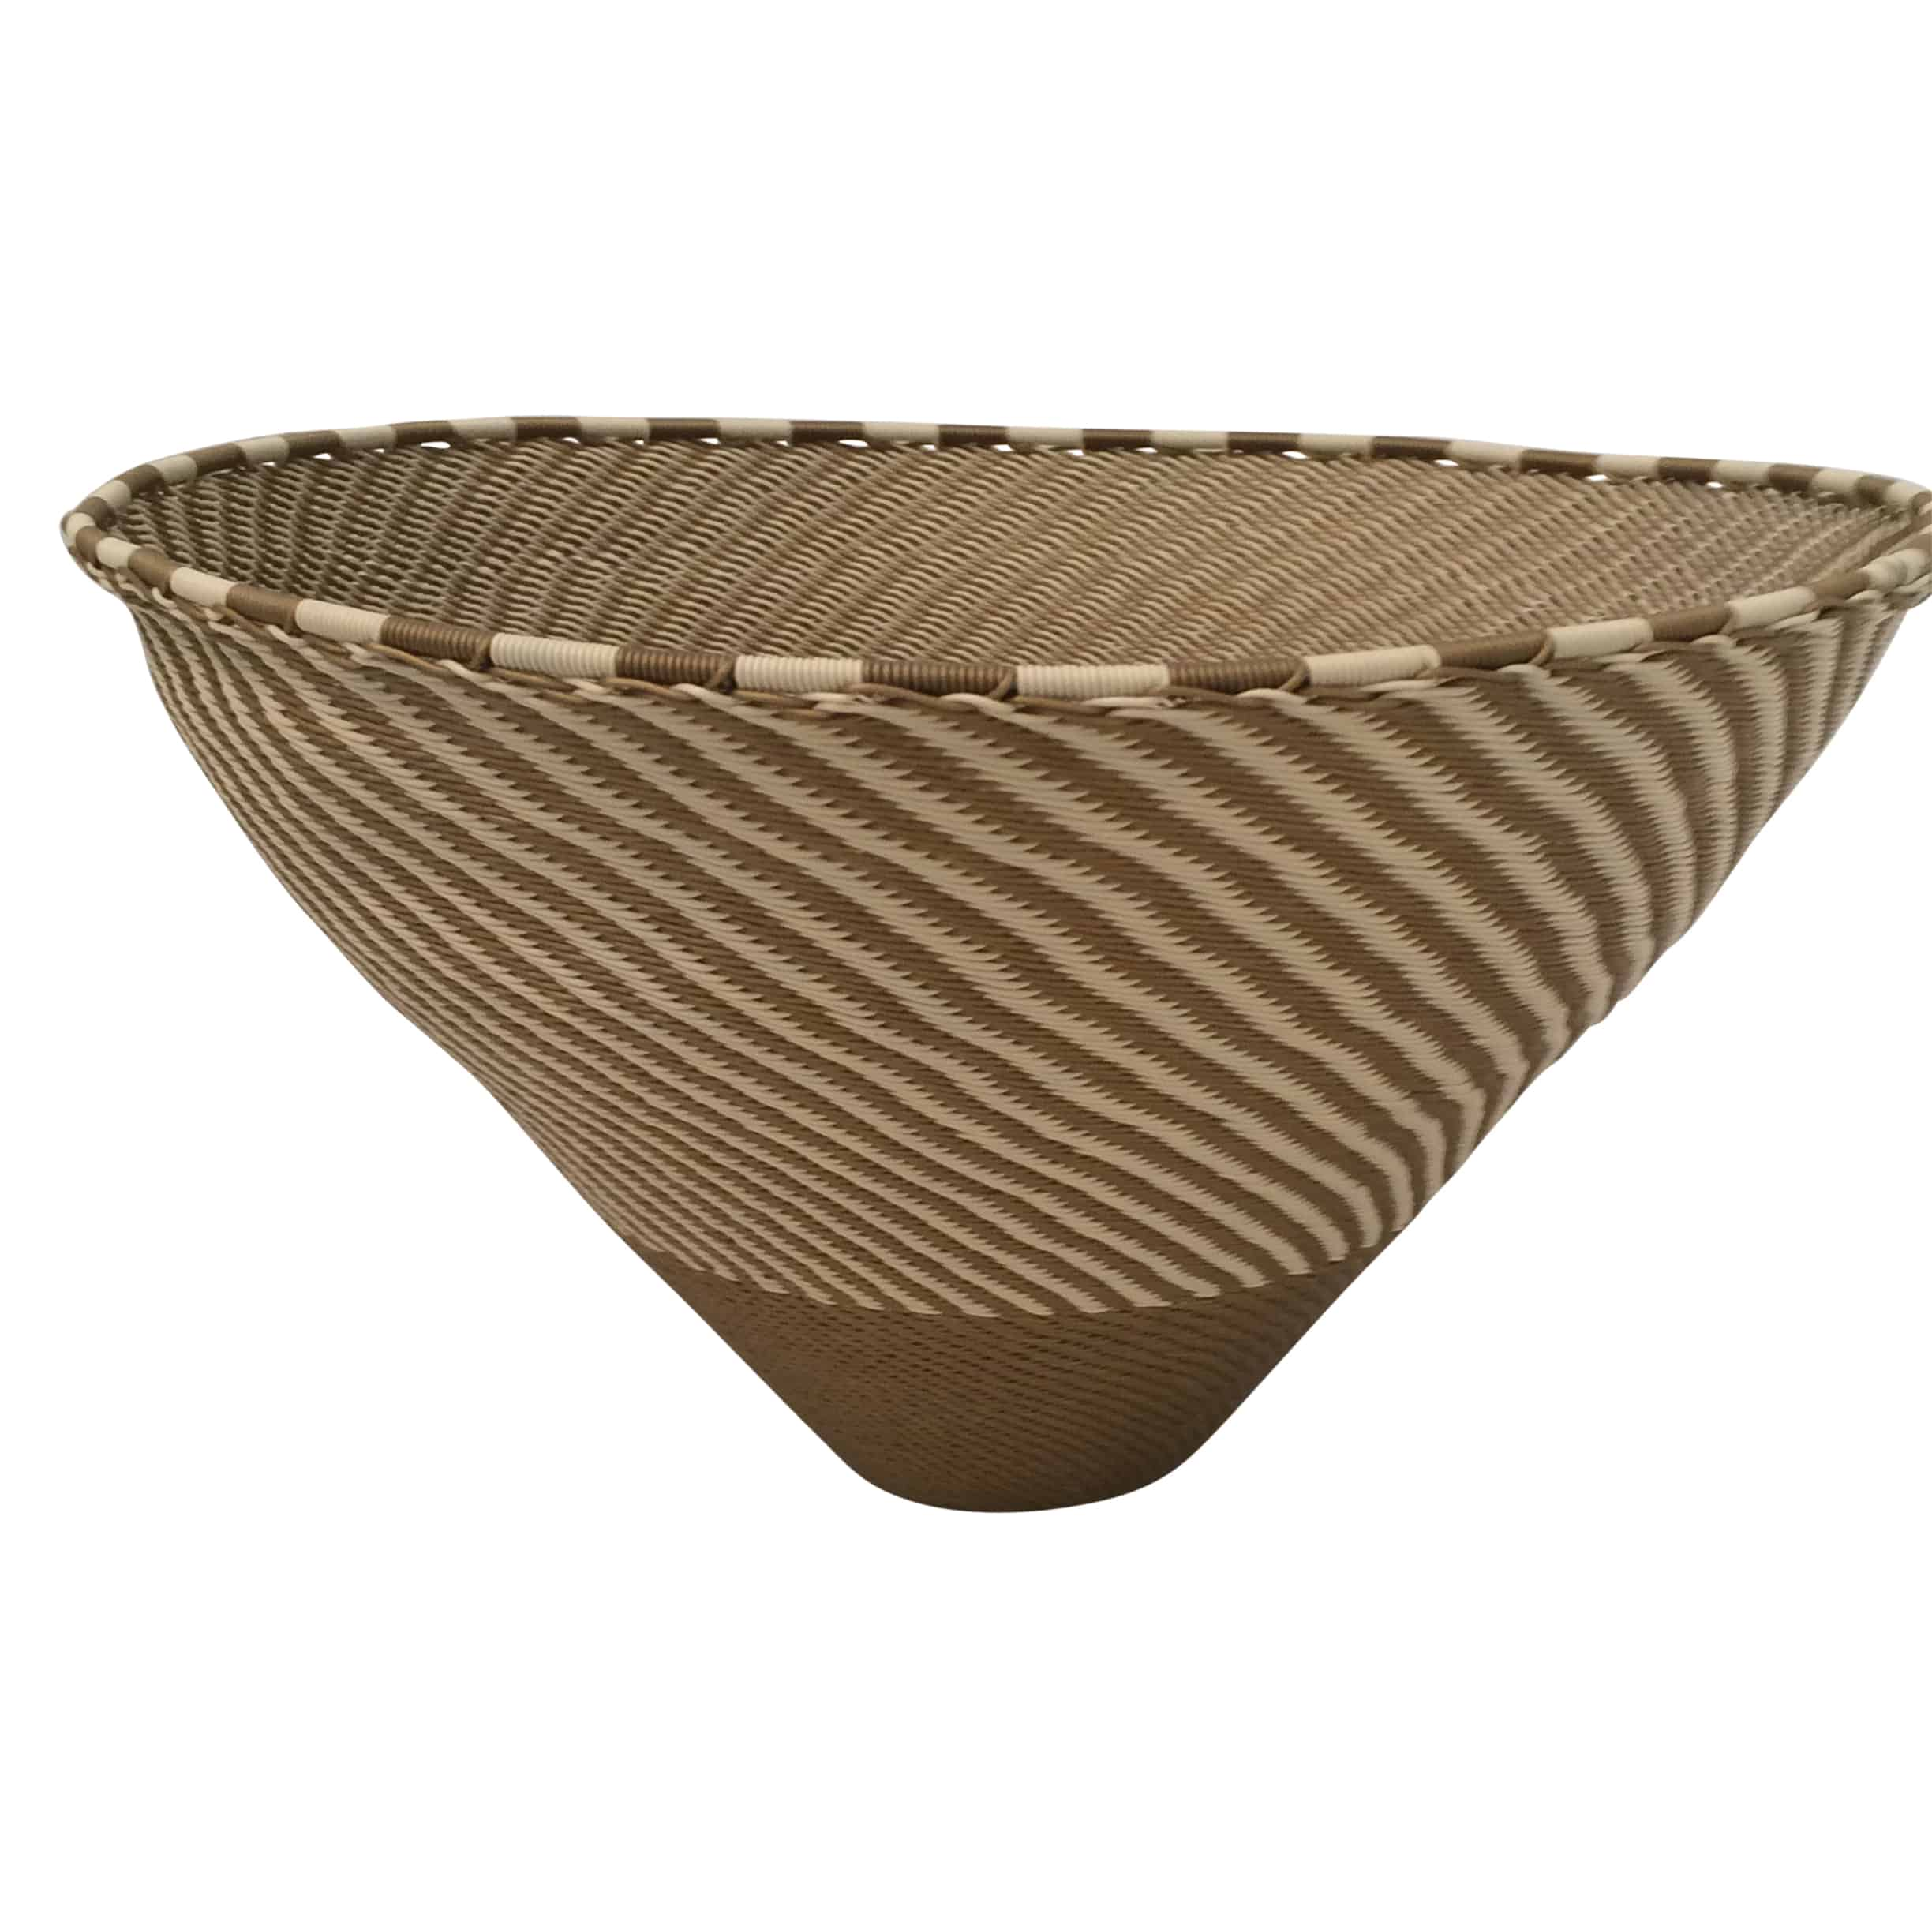 African Woven Hamper Woven African Wire Baskets Cabana Home